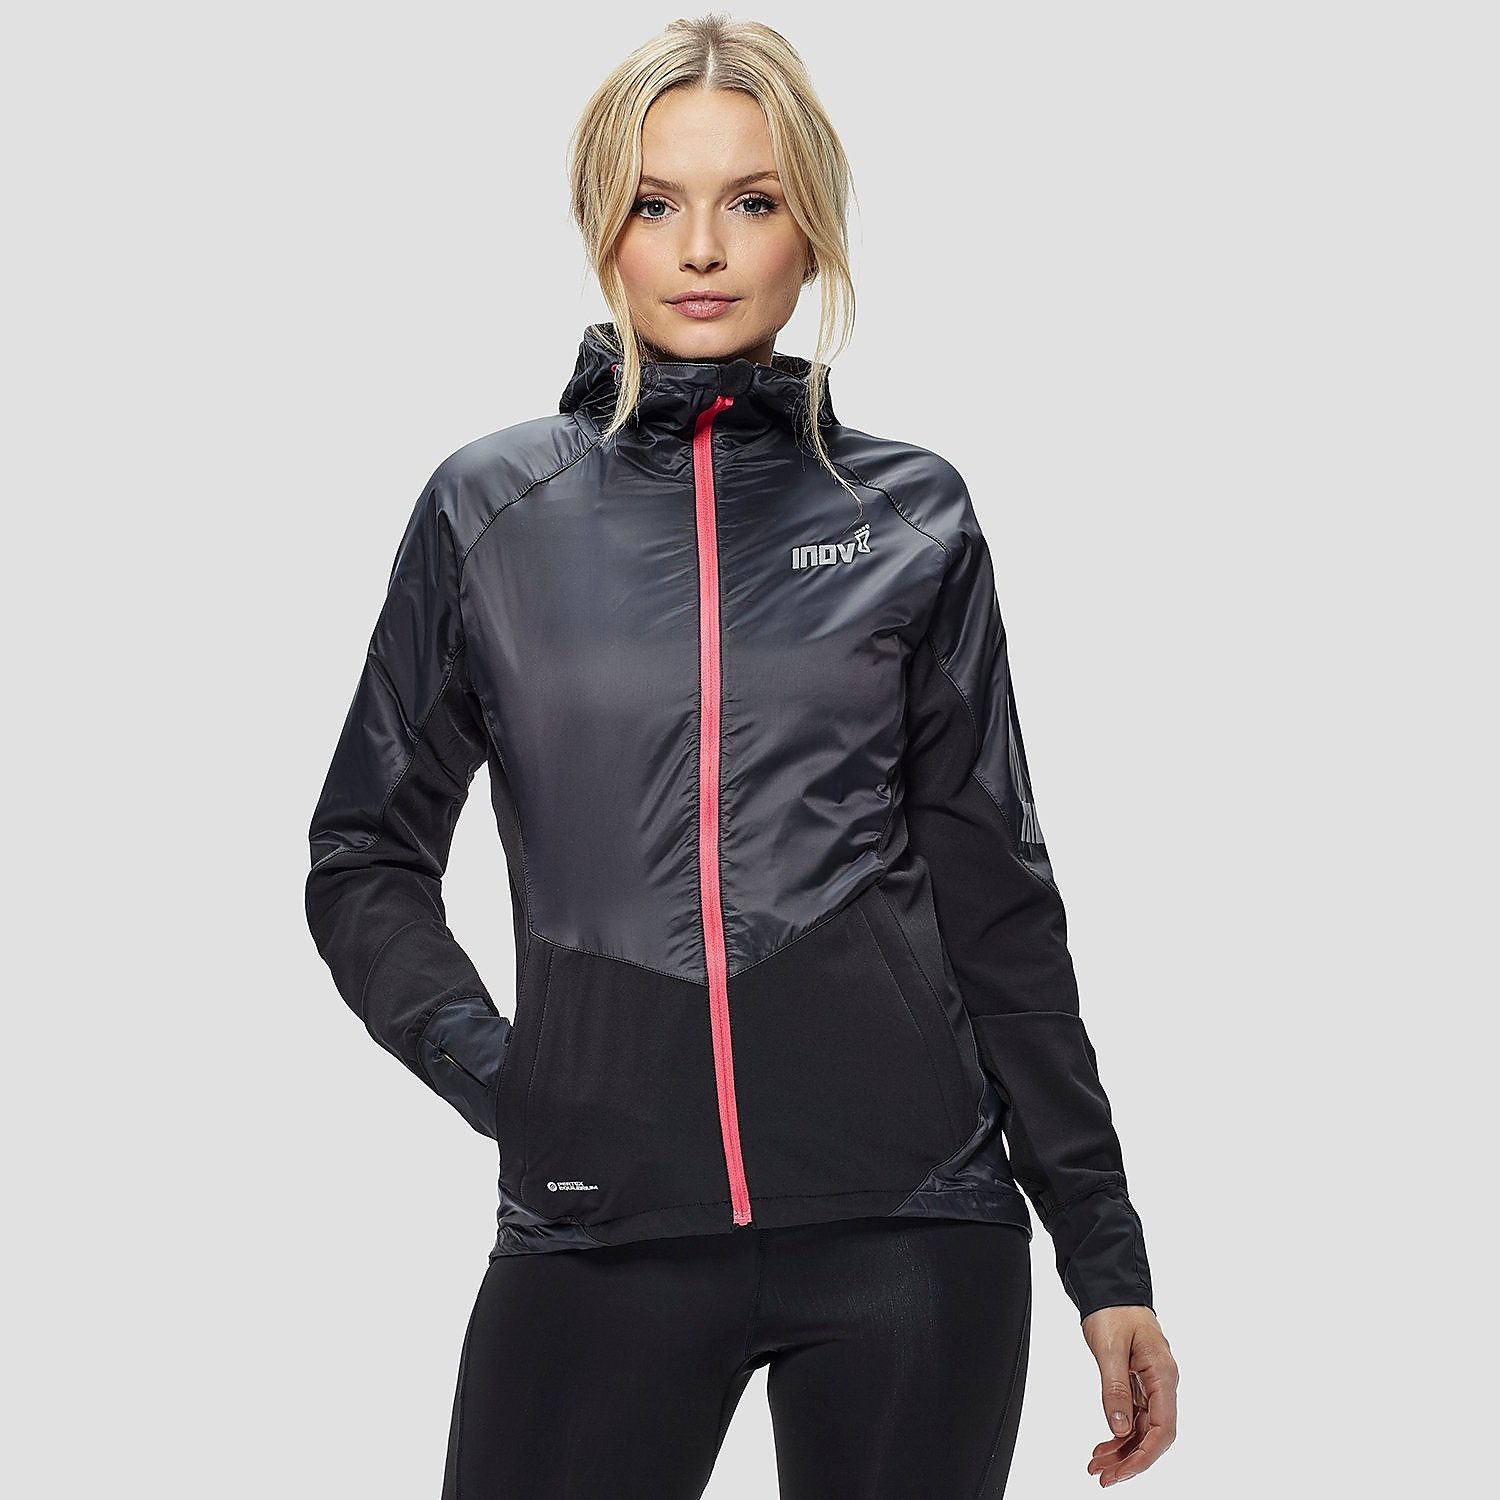 Inov-8 AT/C Softshell Pro FZ Women's Jacket